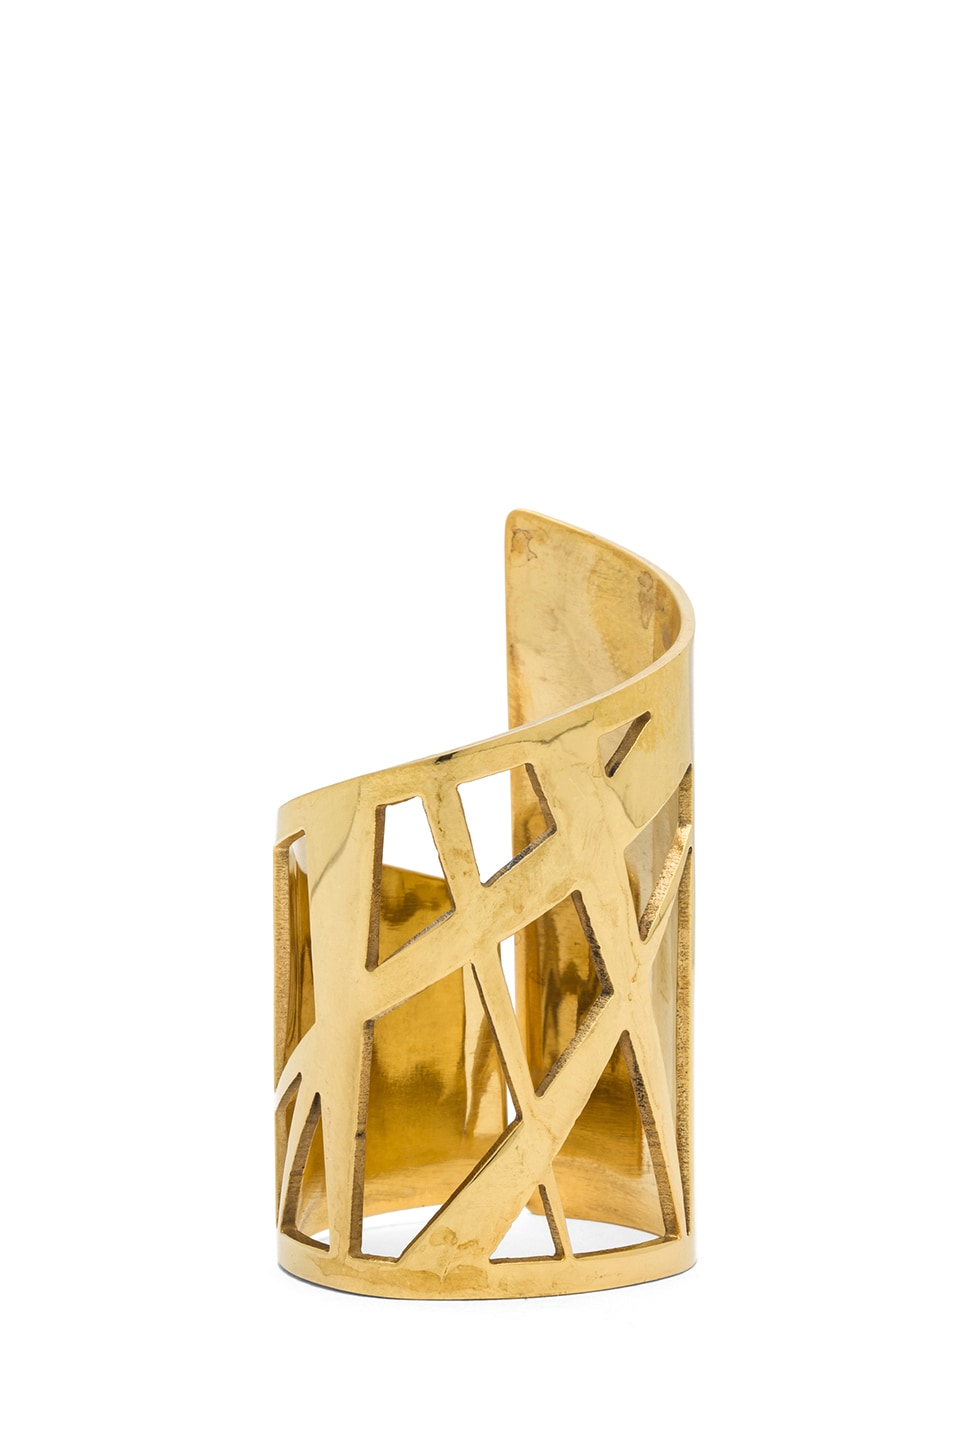 Image 1 of Kelly Wearstler Intersecting Cuff in Gold